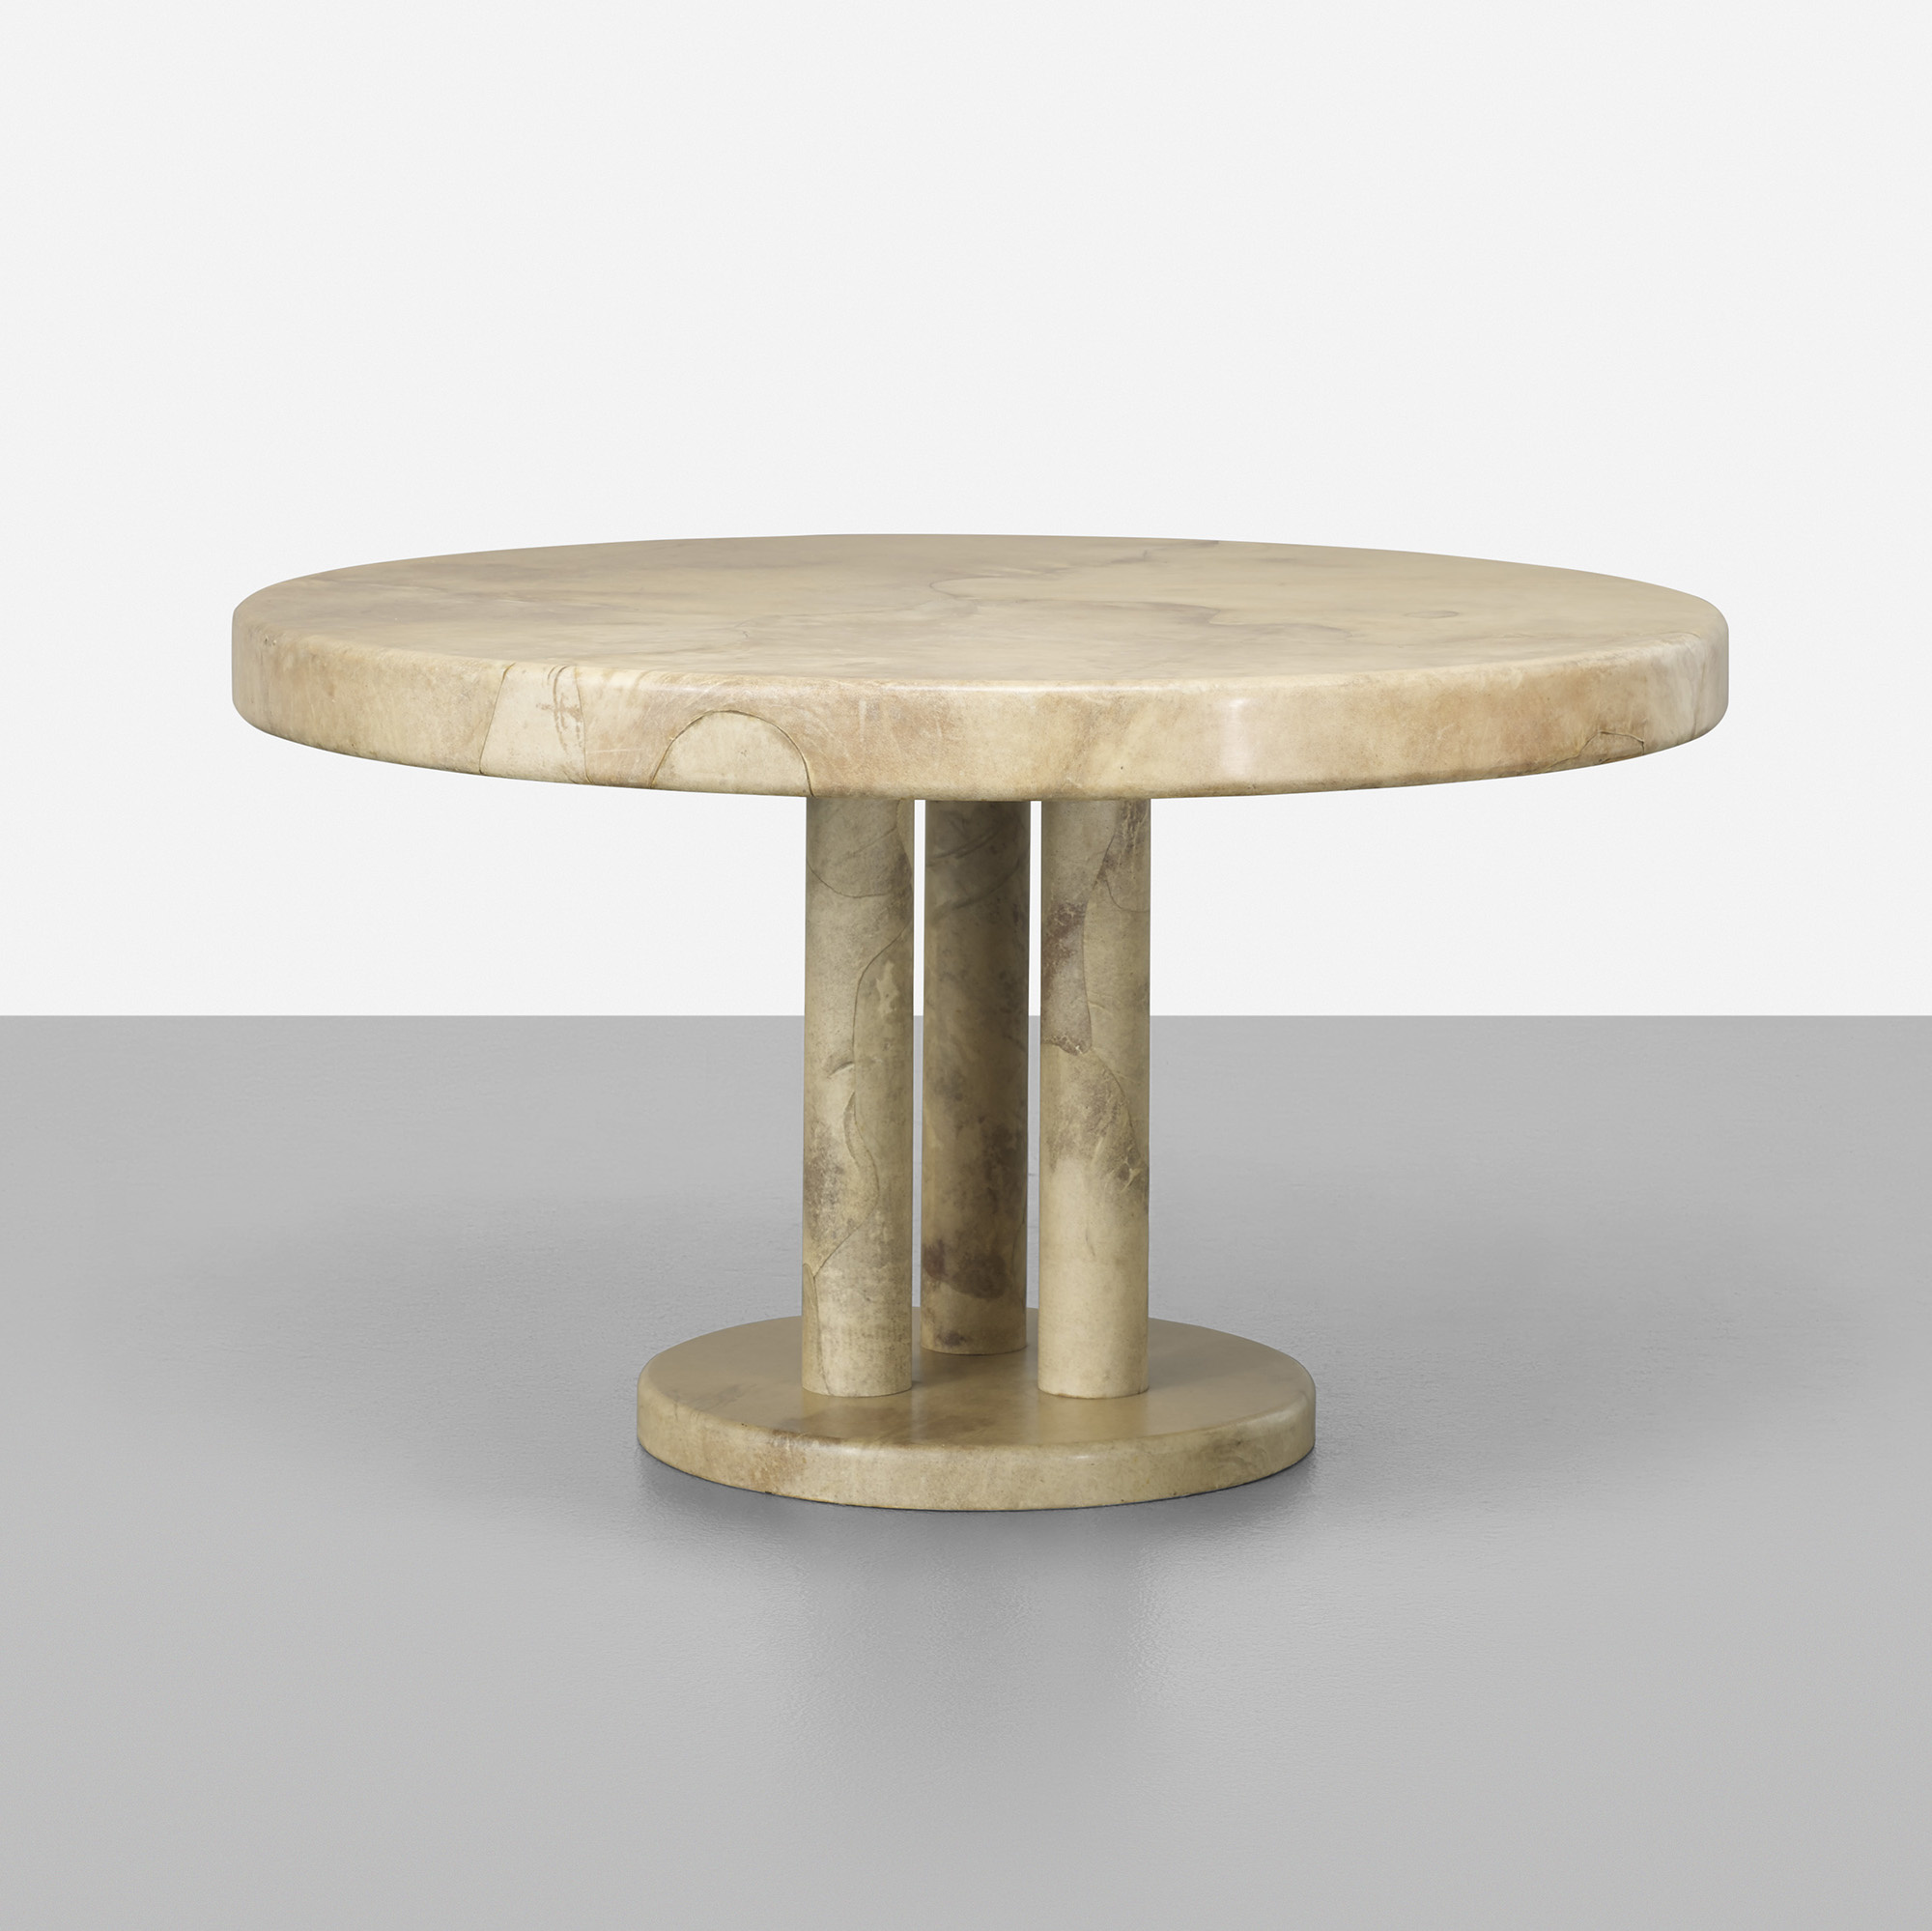 270: Karl Springer / Custom Dining Table (1 Of 3)